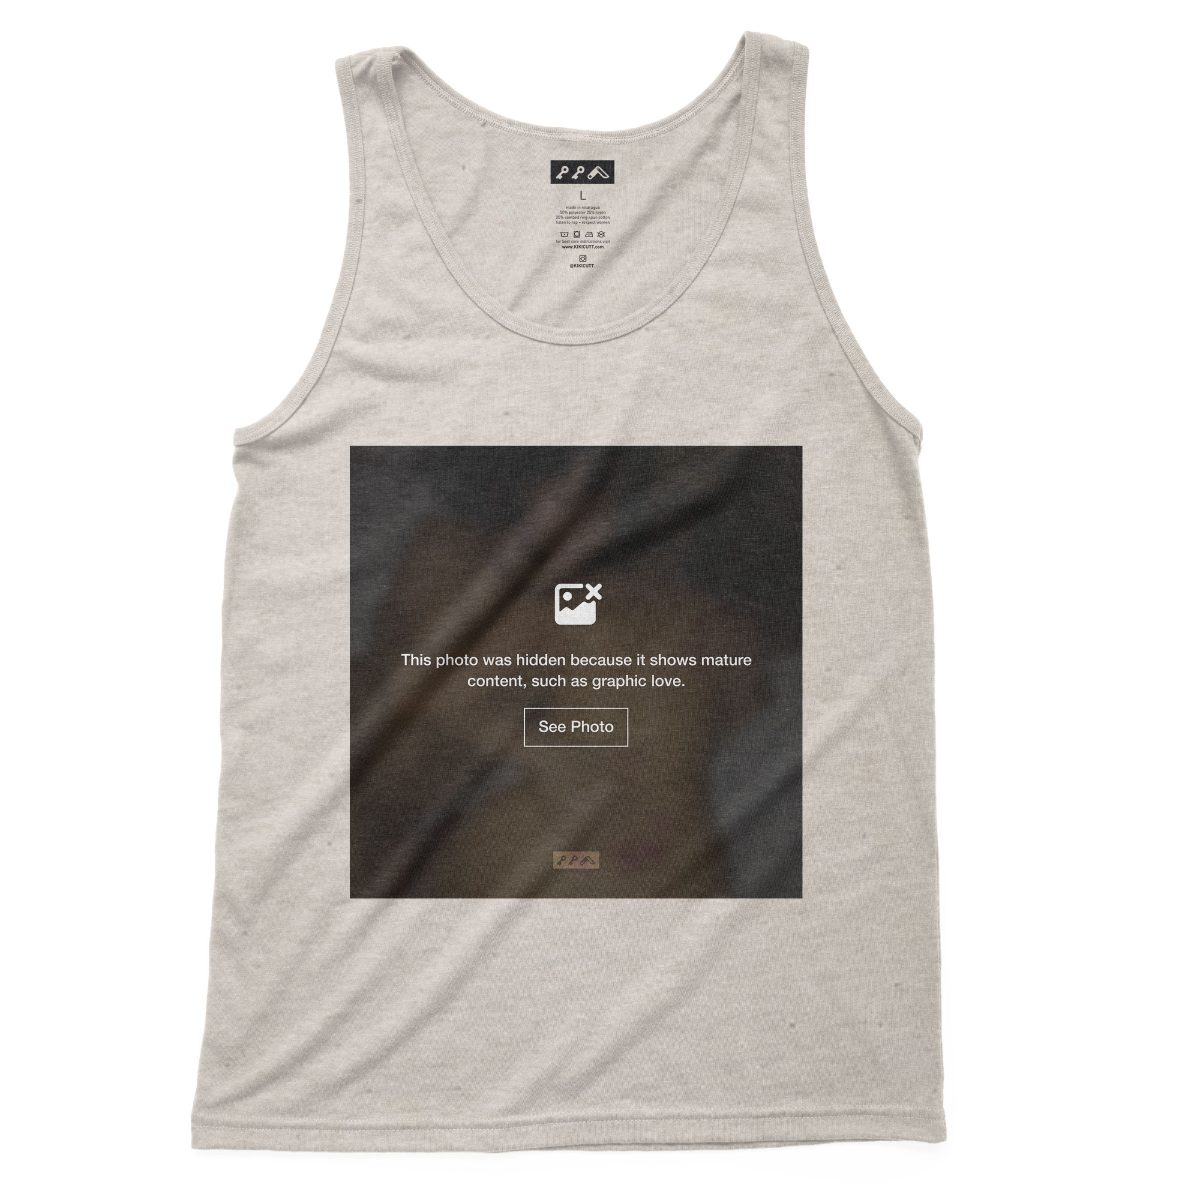 """GRAPHIC LOVE"" sexual content tank tops in soft oatmeal tri-blend"